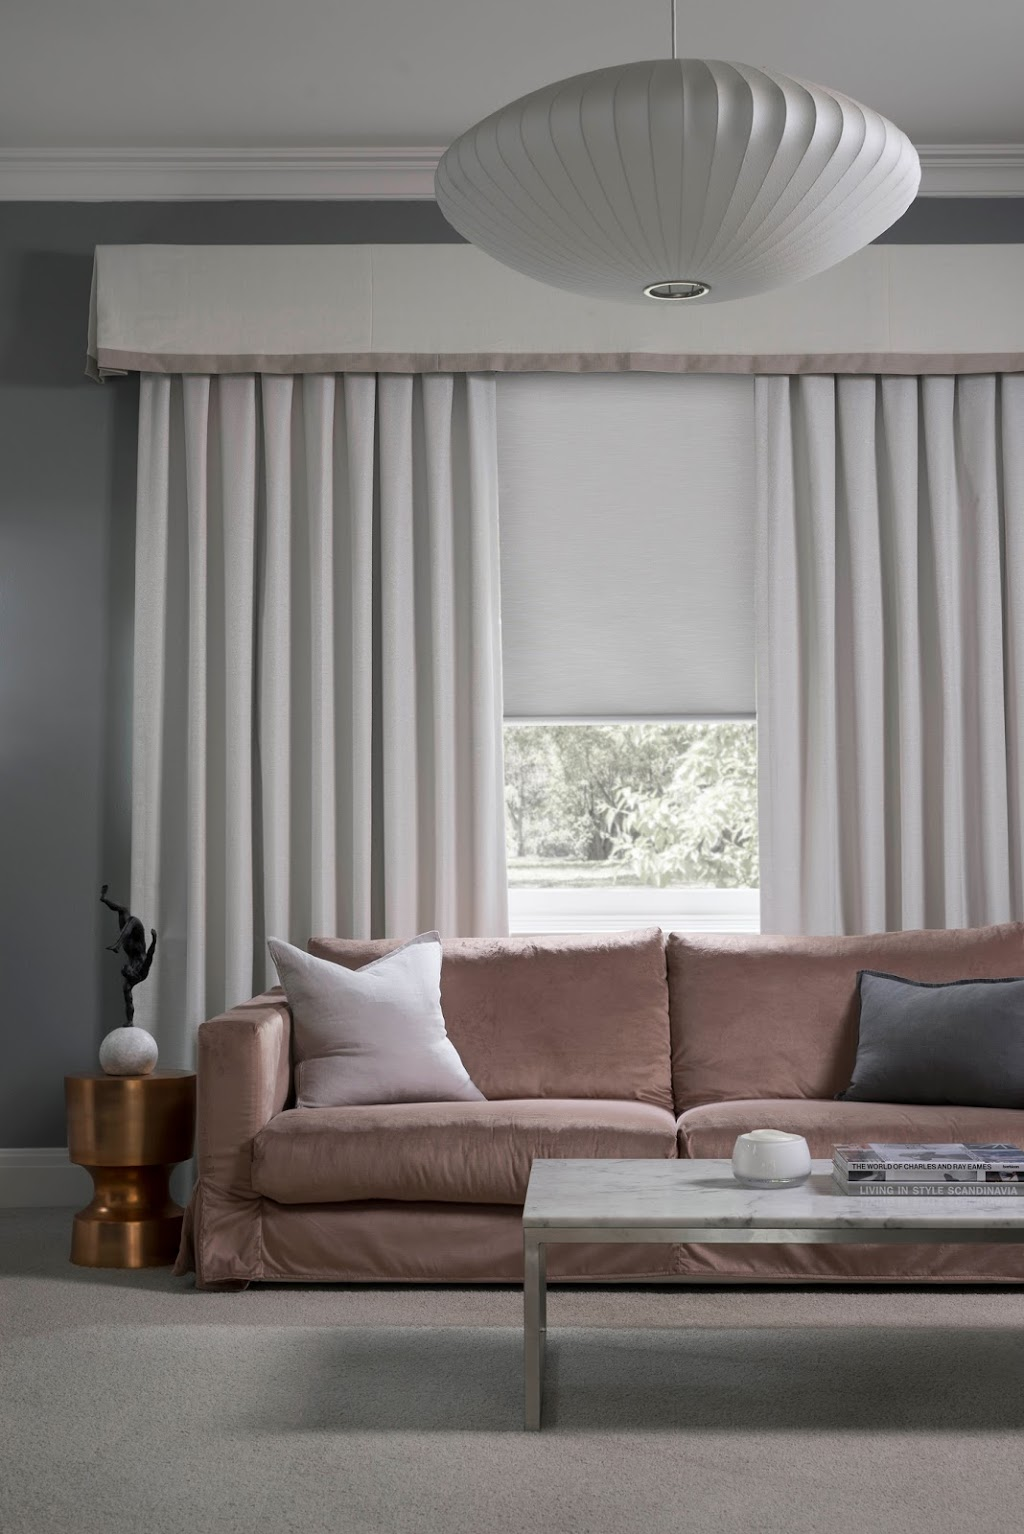 Dollar Curtains + Blinds Colac | home goods store | 325 Murray St, Colac VIC 3250, Australia | 0352311494 OR +61 3 5231 1494